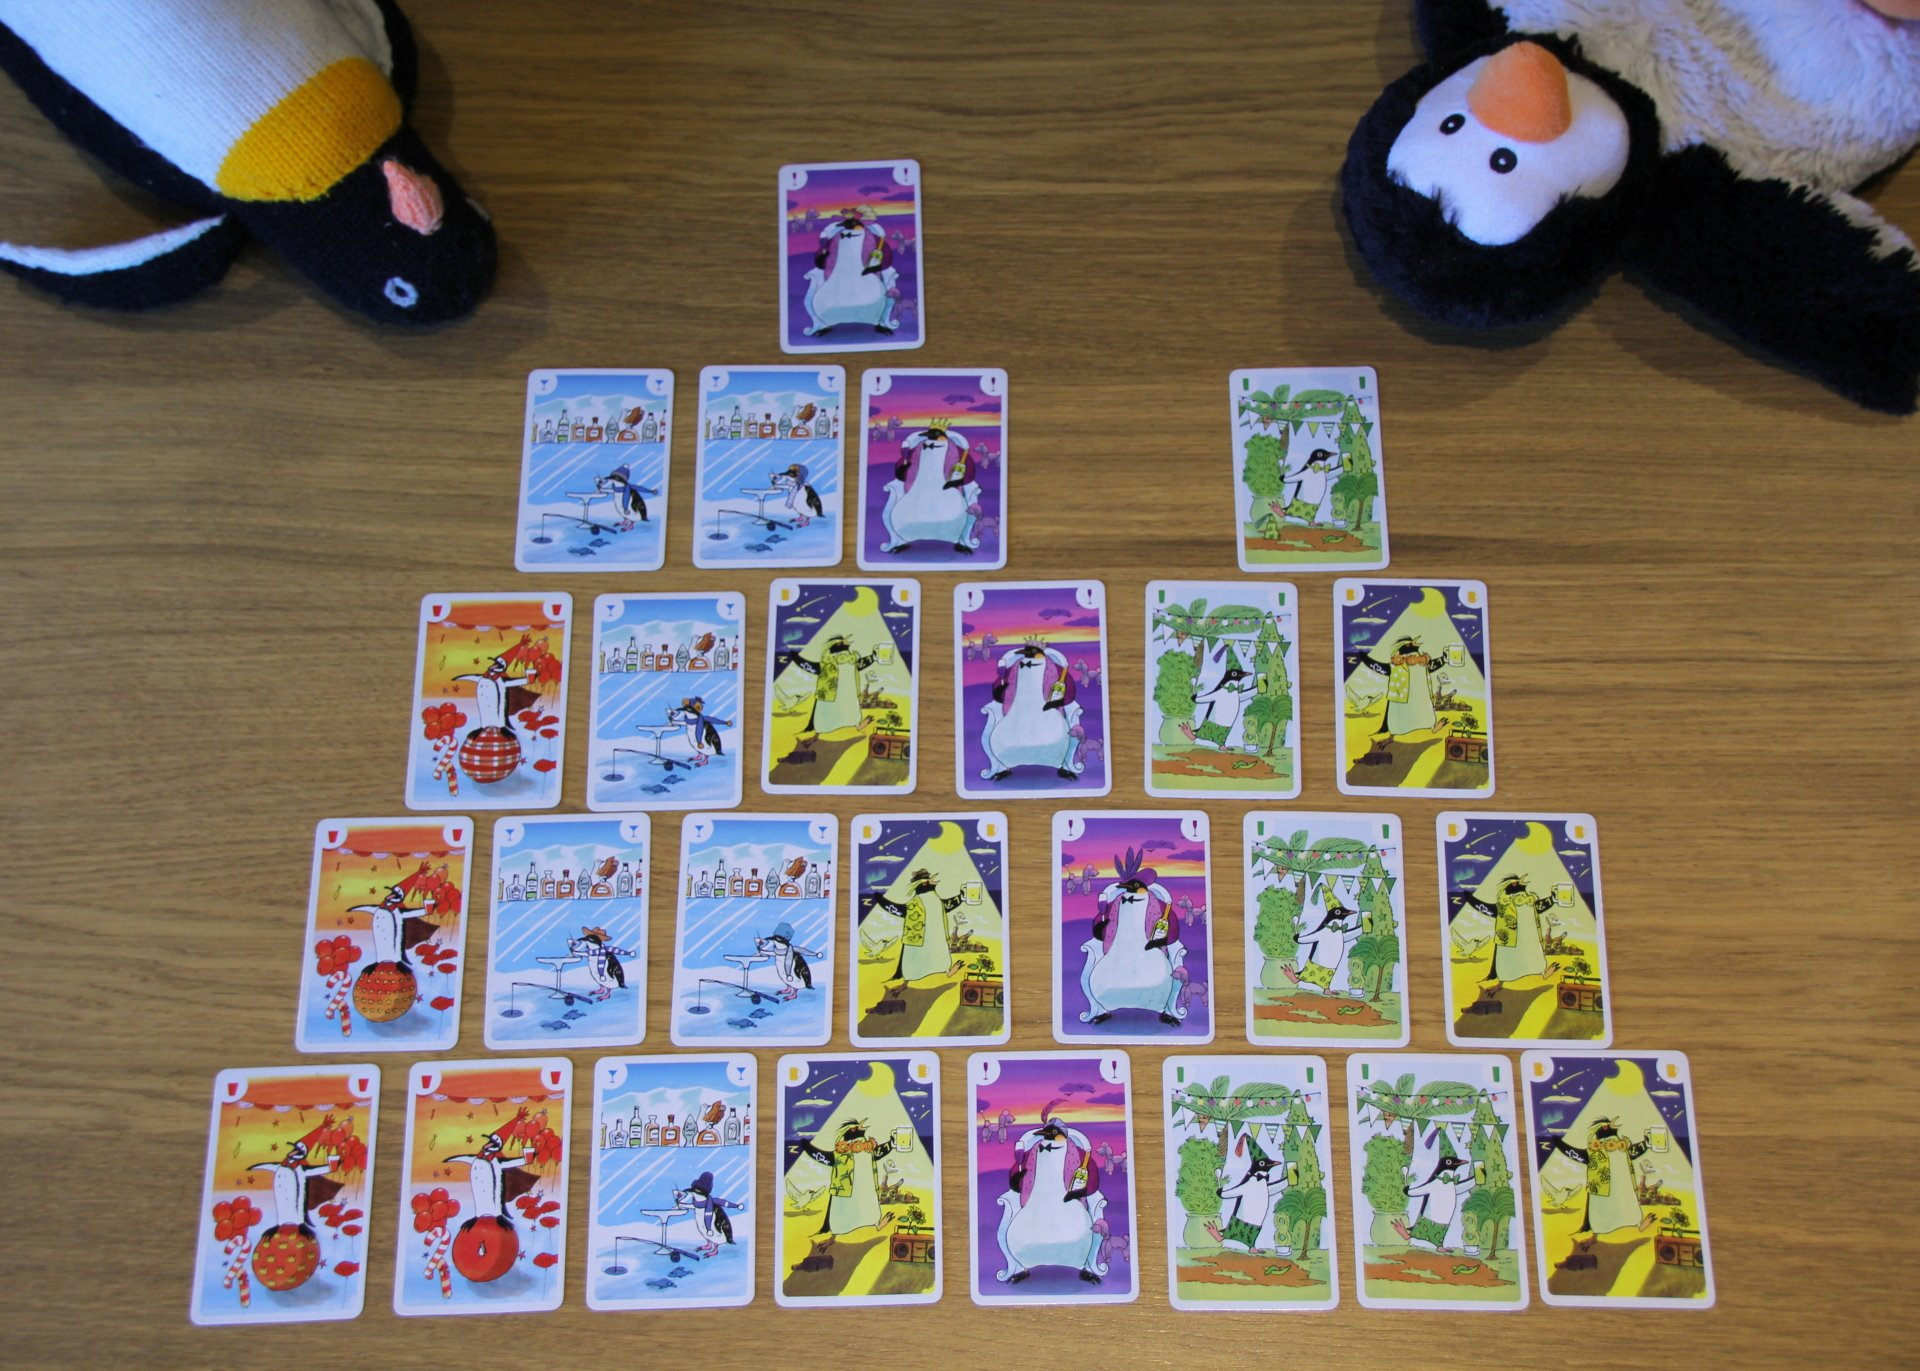 Penguin Party - The best party game you've never heard of